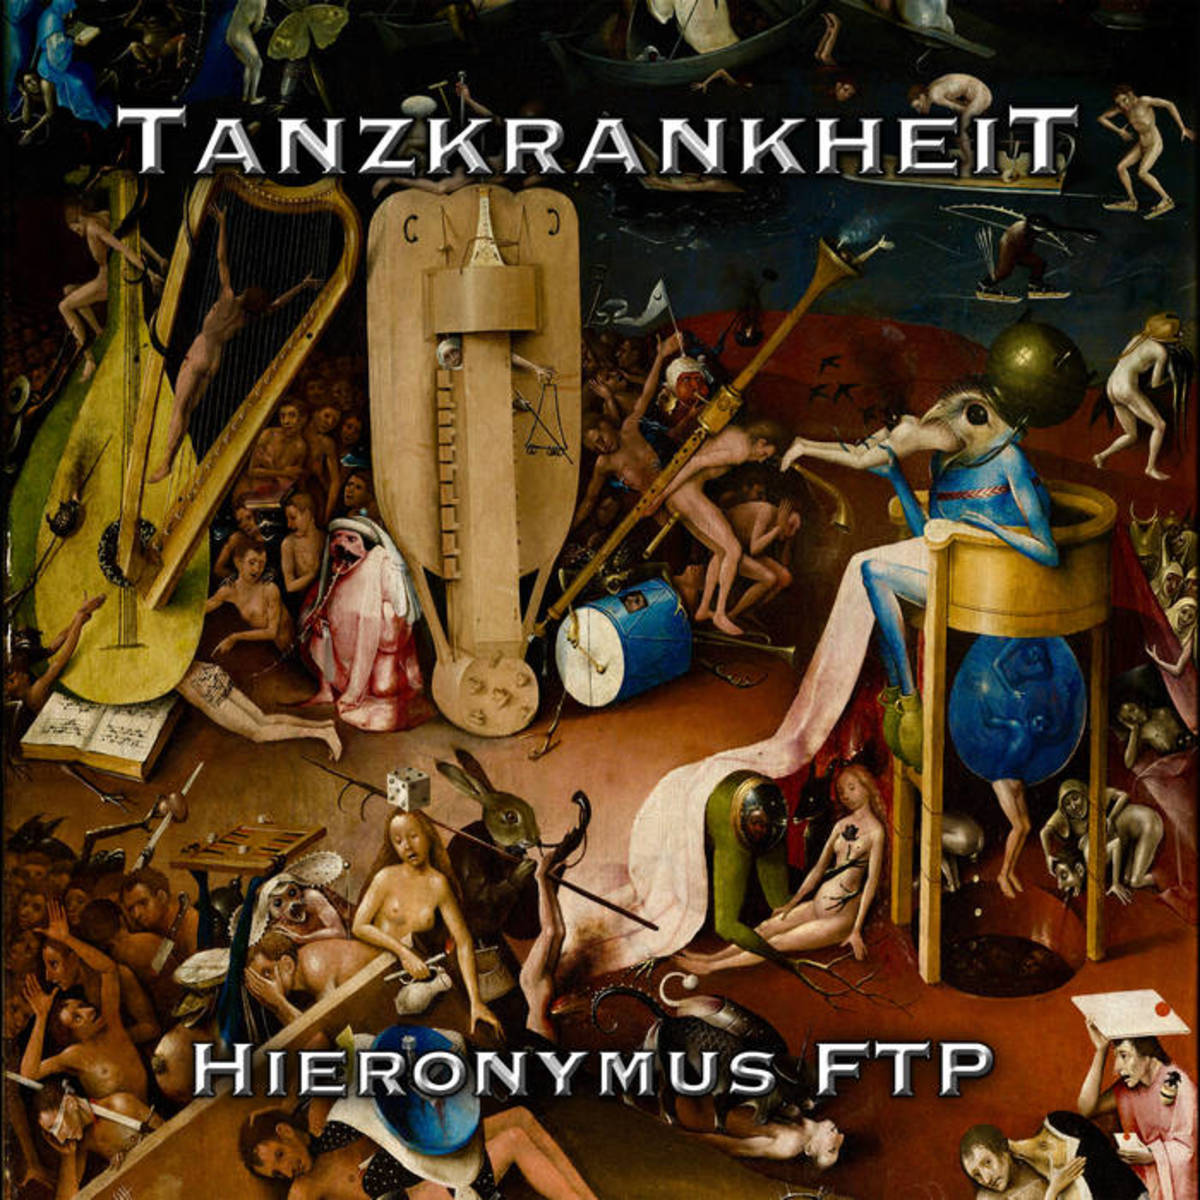 electronic-ep-review-hieronymus-ftp-tanzkrankheit